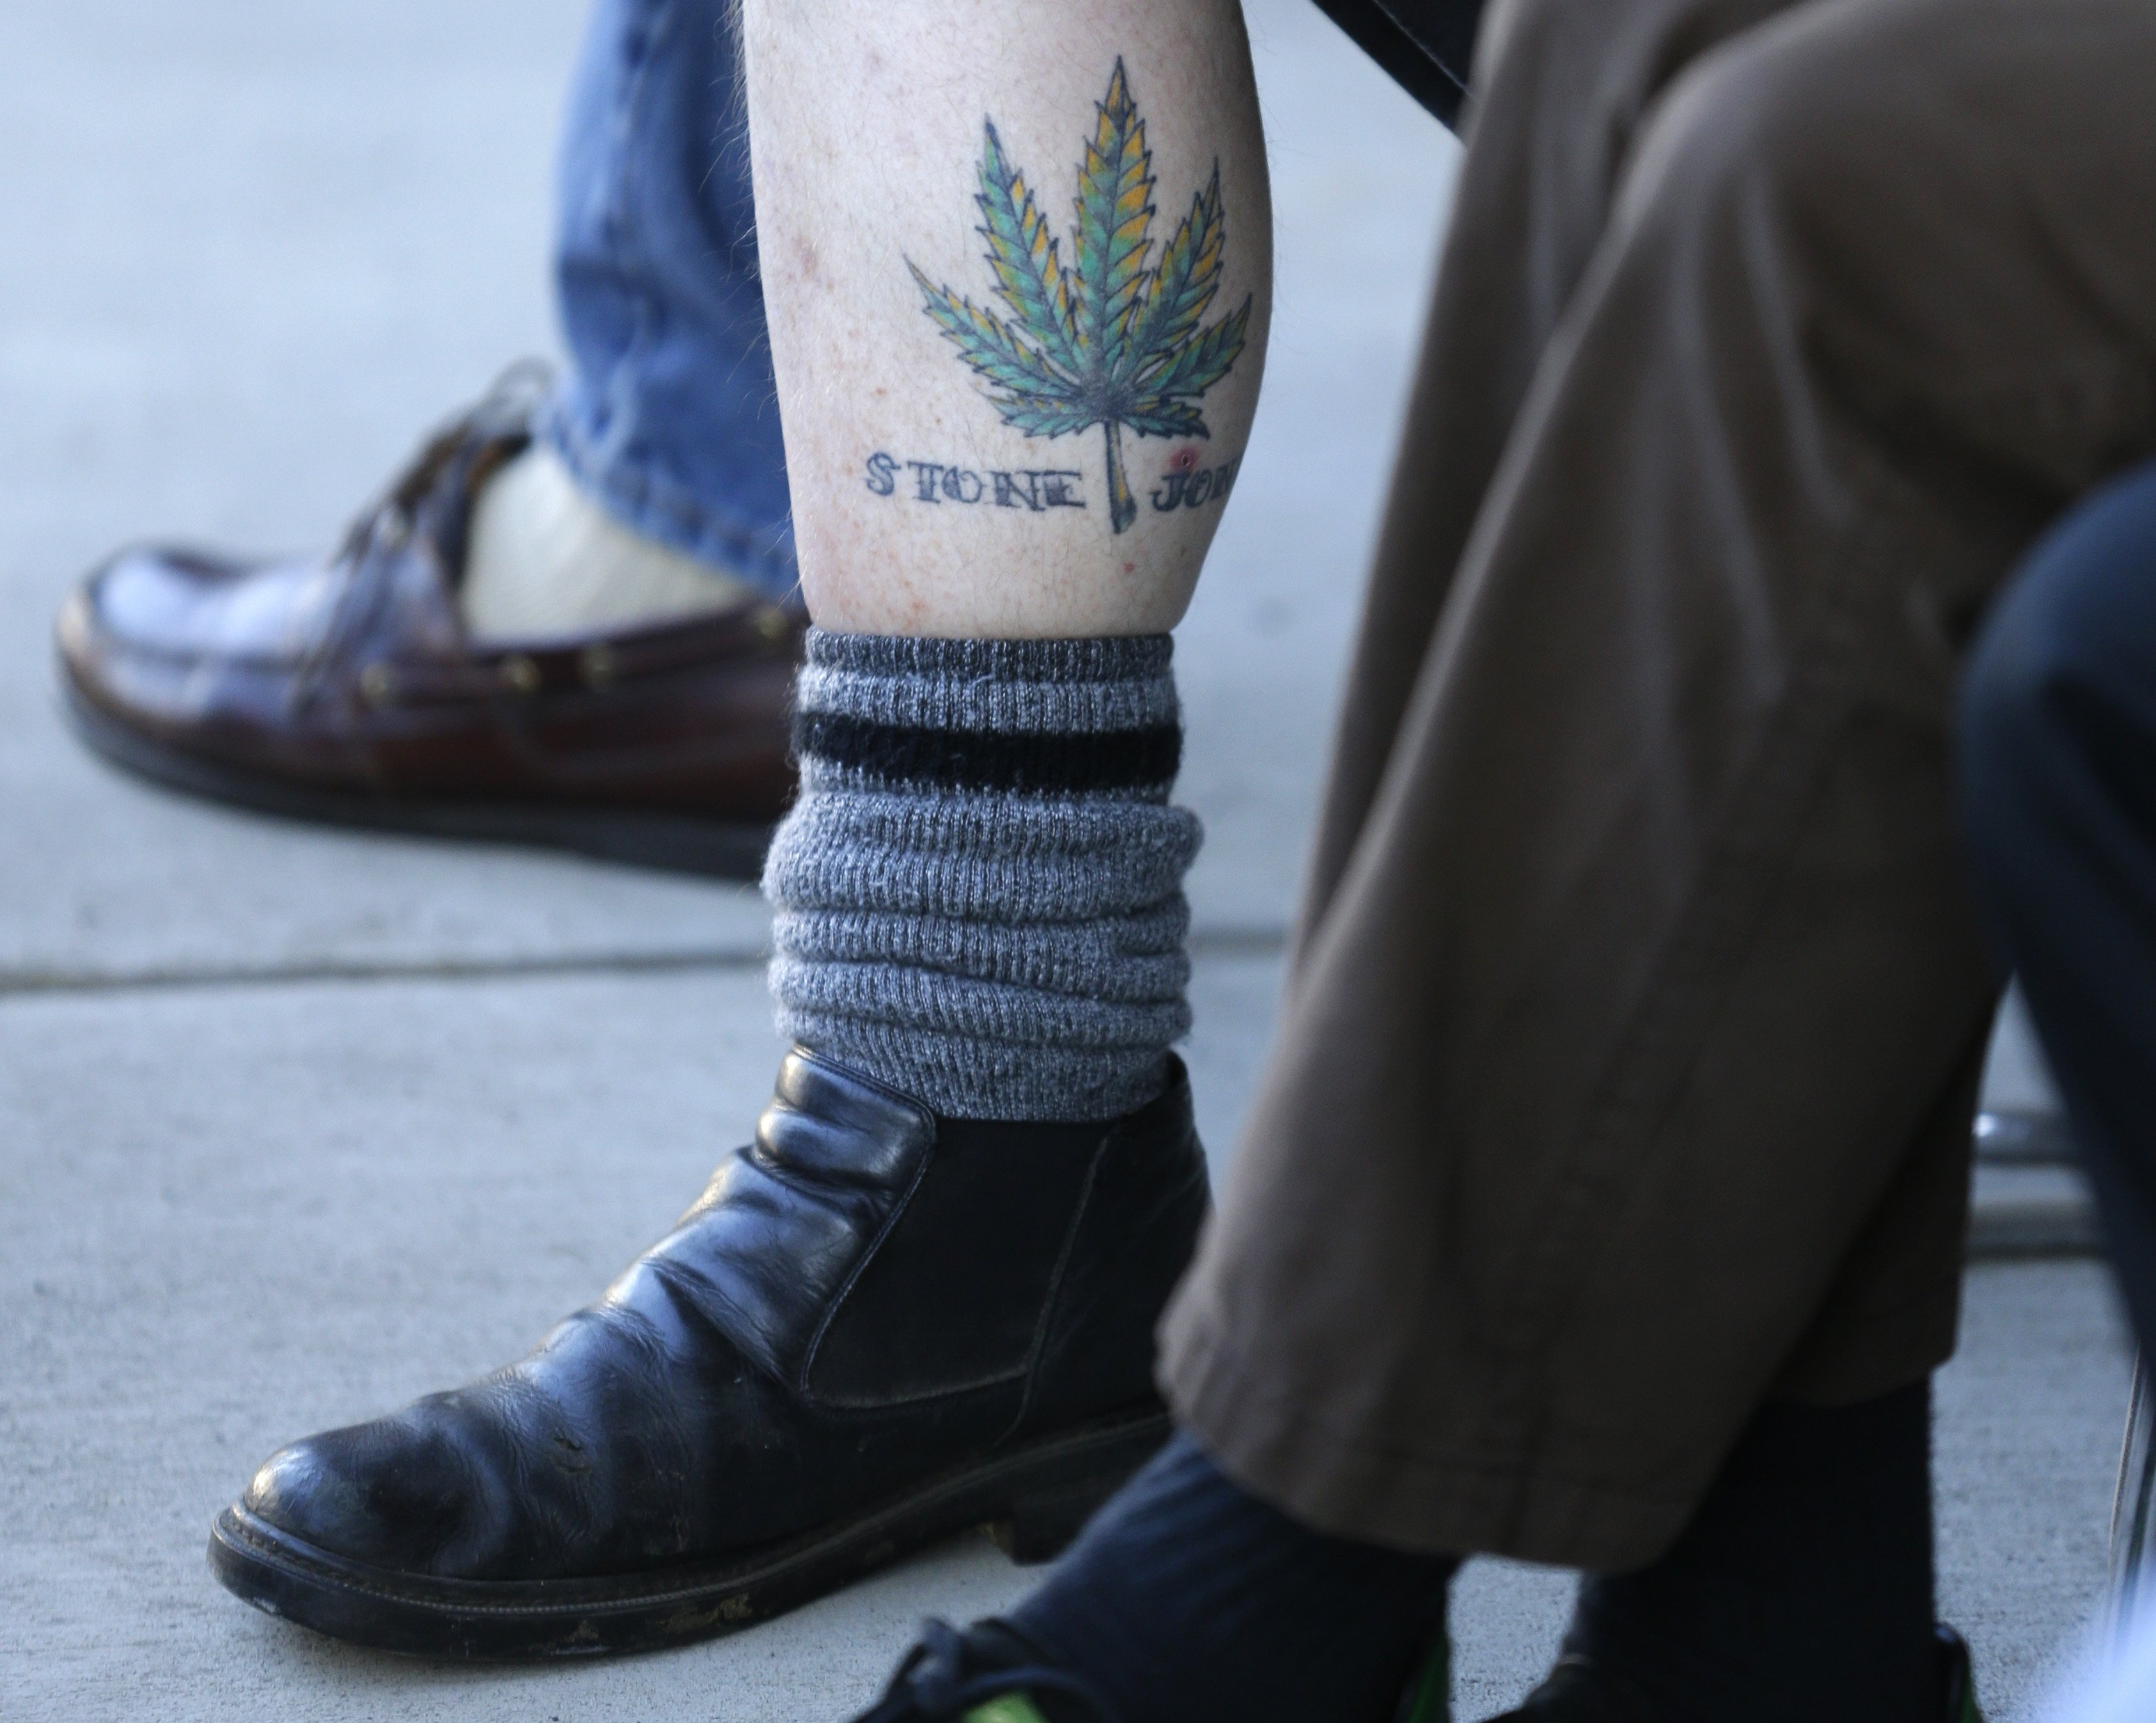 A man waiting in line to buy recreational marijuana displays his pot-leaf tattoo oustside of Top Shelf Cannabis in Bellingham, Wash. on July 8, 2014.